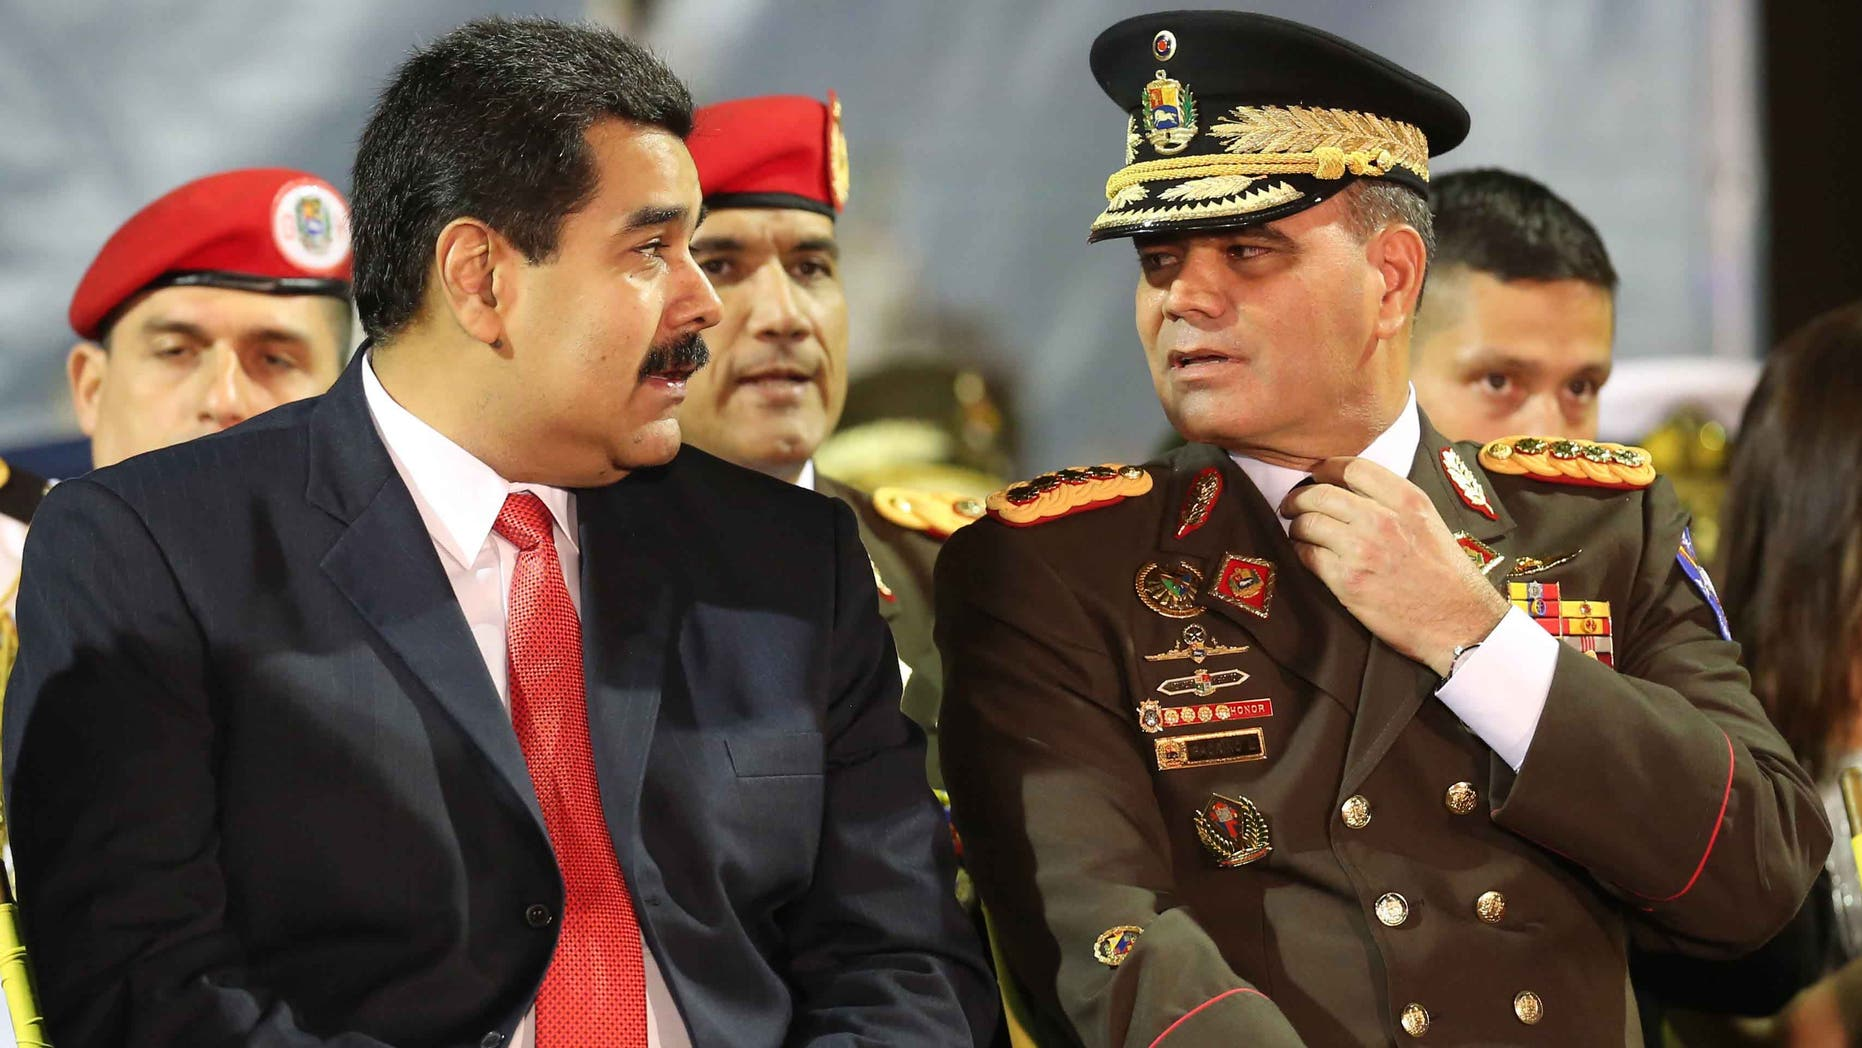 Venezuela's President Nicolas Maduro and his Defense Minister Gen. Vladimir Padrino, in a 2014 file photo.